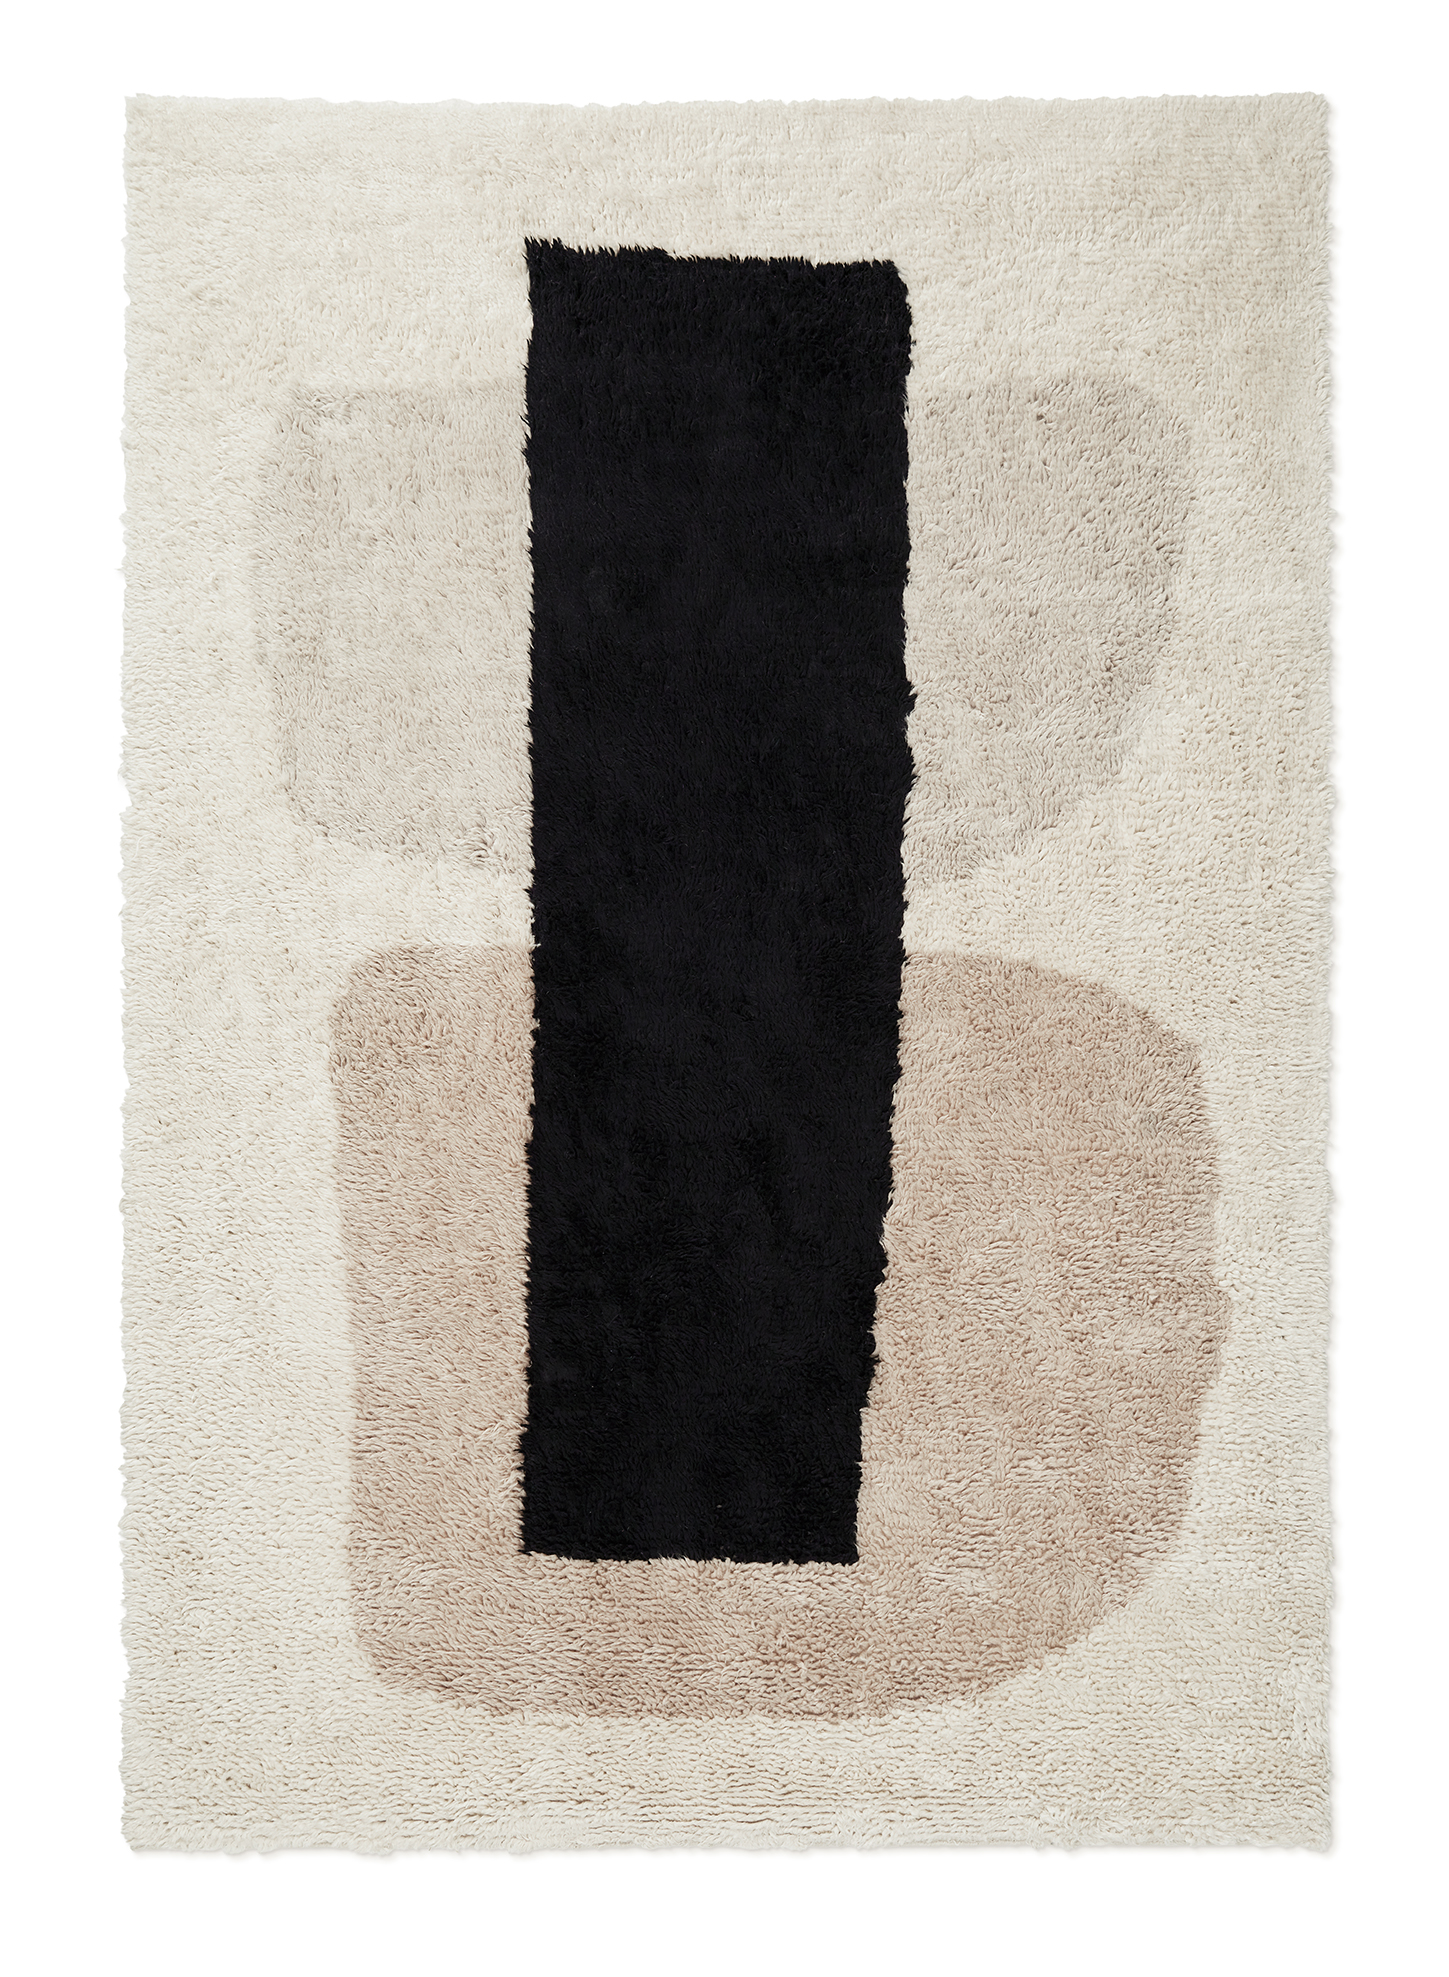 Campaign page. Monolith 01 Dusty White, Oatmeal, Black, wool rug.